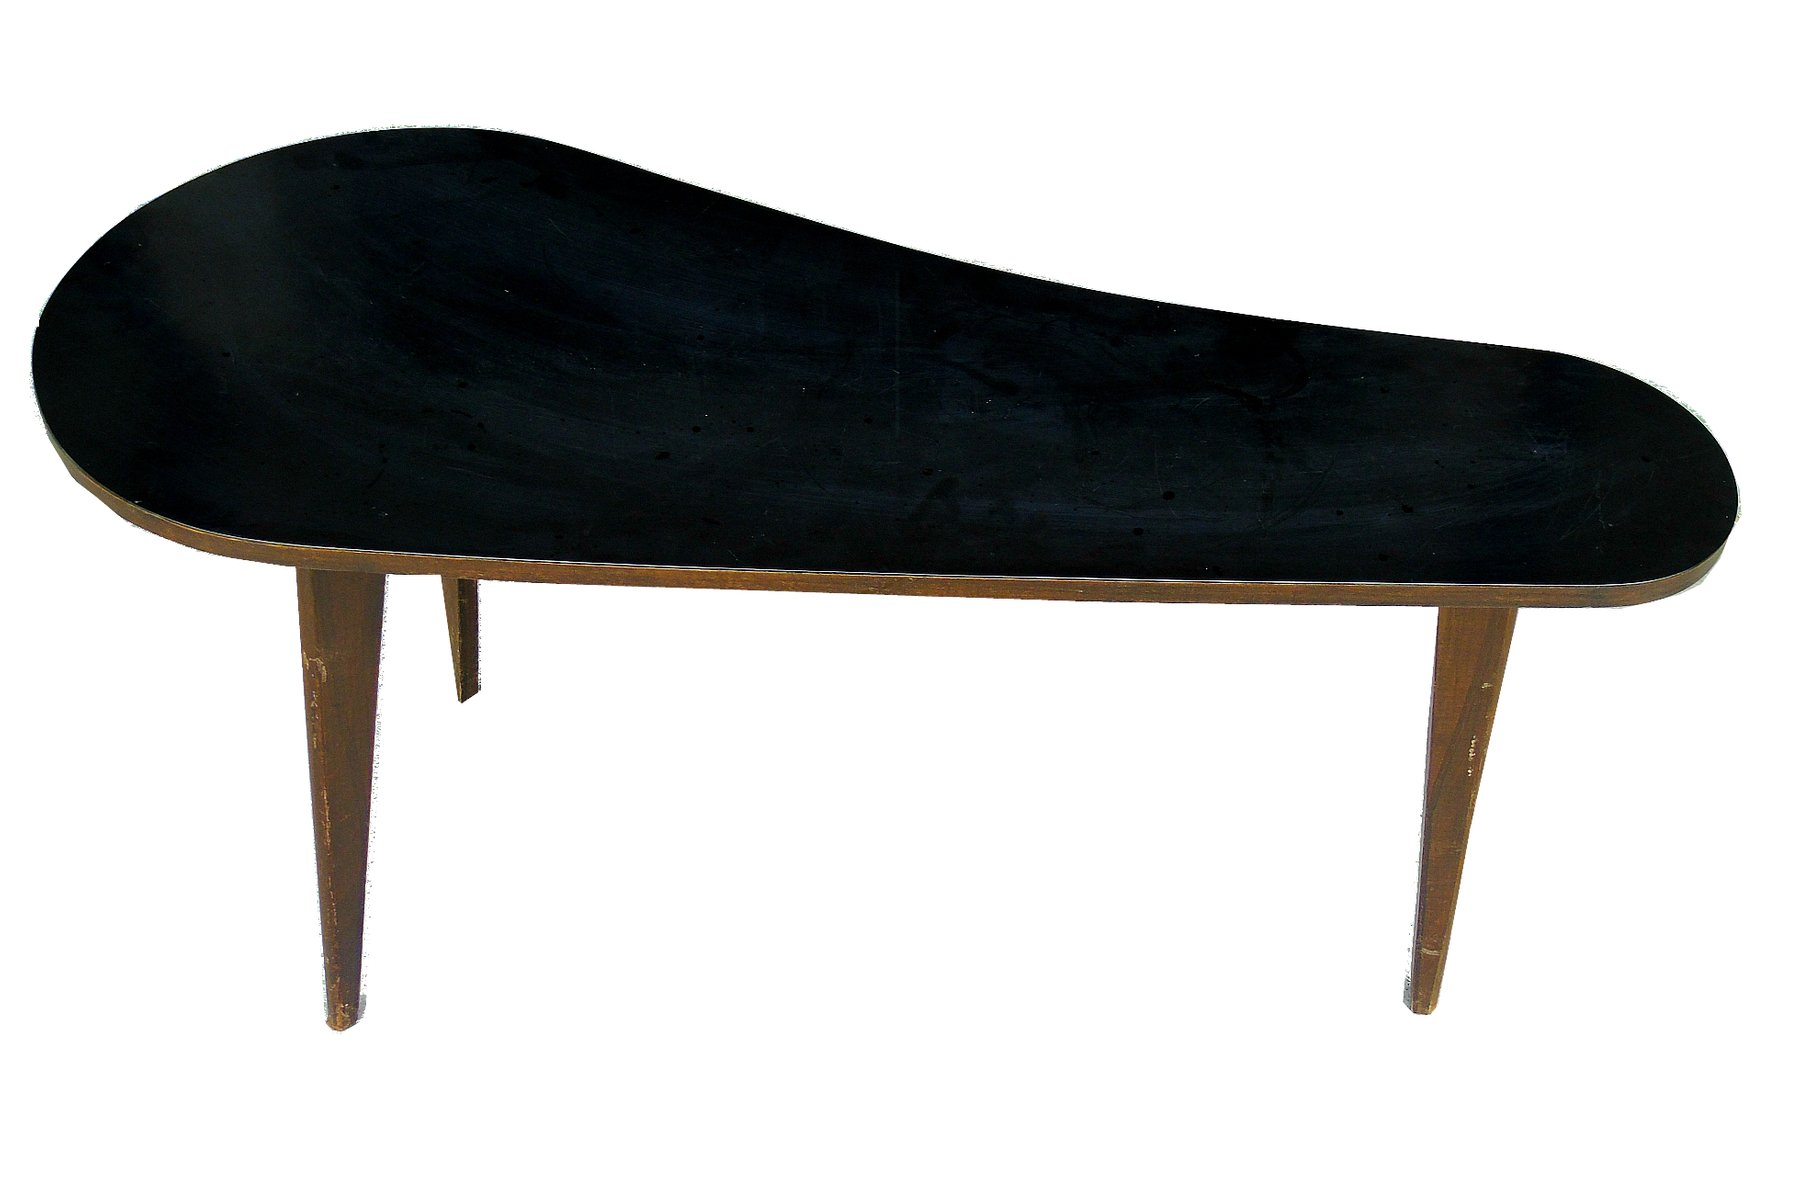 Vintage Kidney Shaped Wooden Coffee Table 1950s